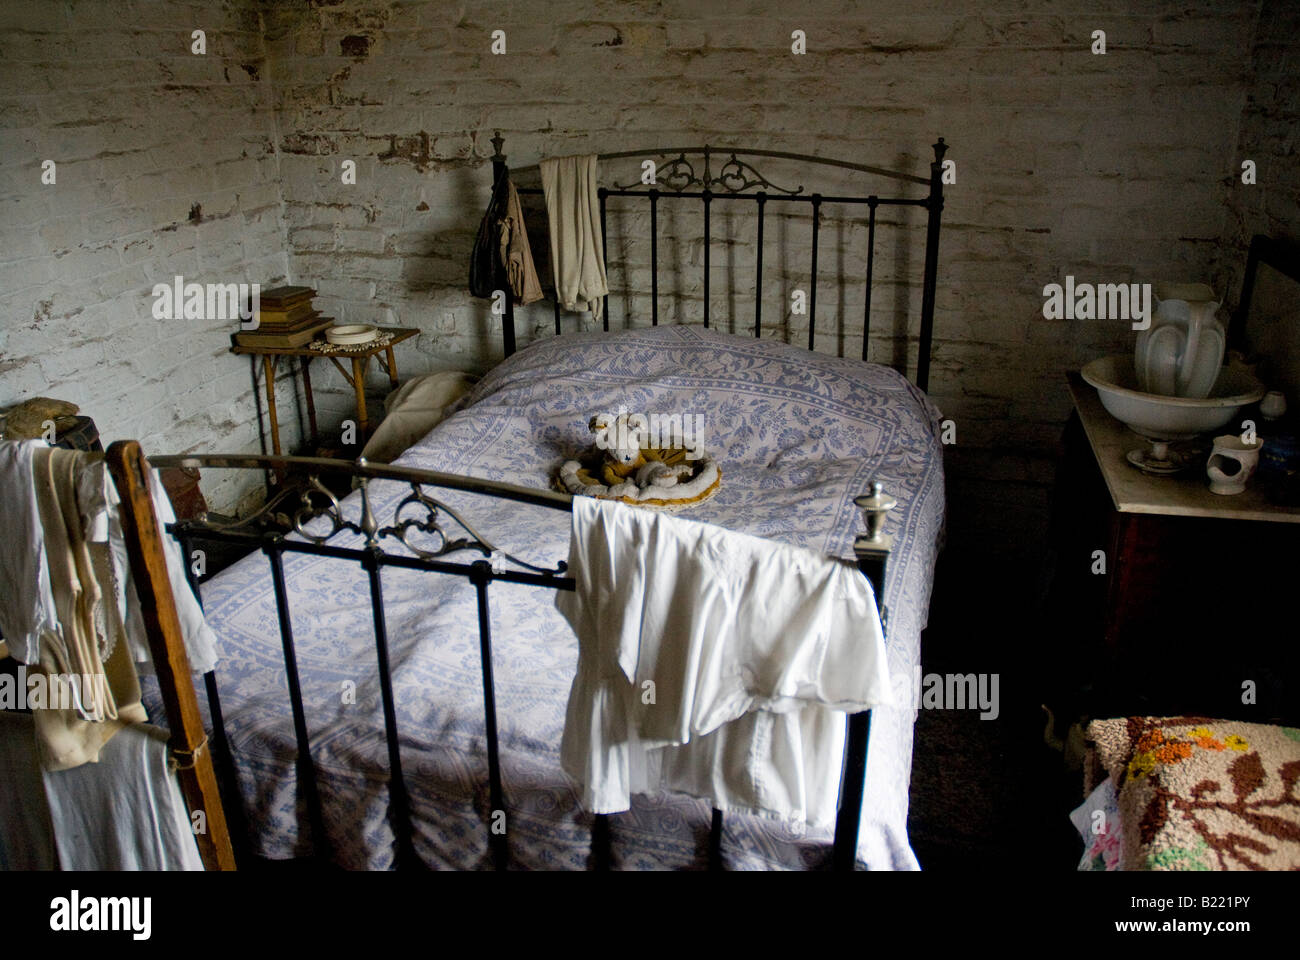 The 'gloomy' interior of Pitt's Cott at the Black Country Museum Dudley, West Midlands, UK - Stock Image